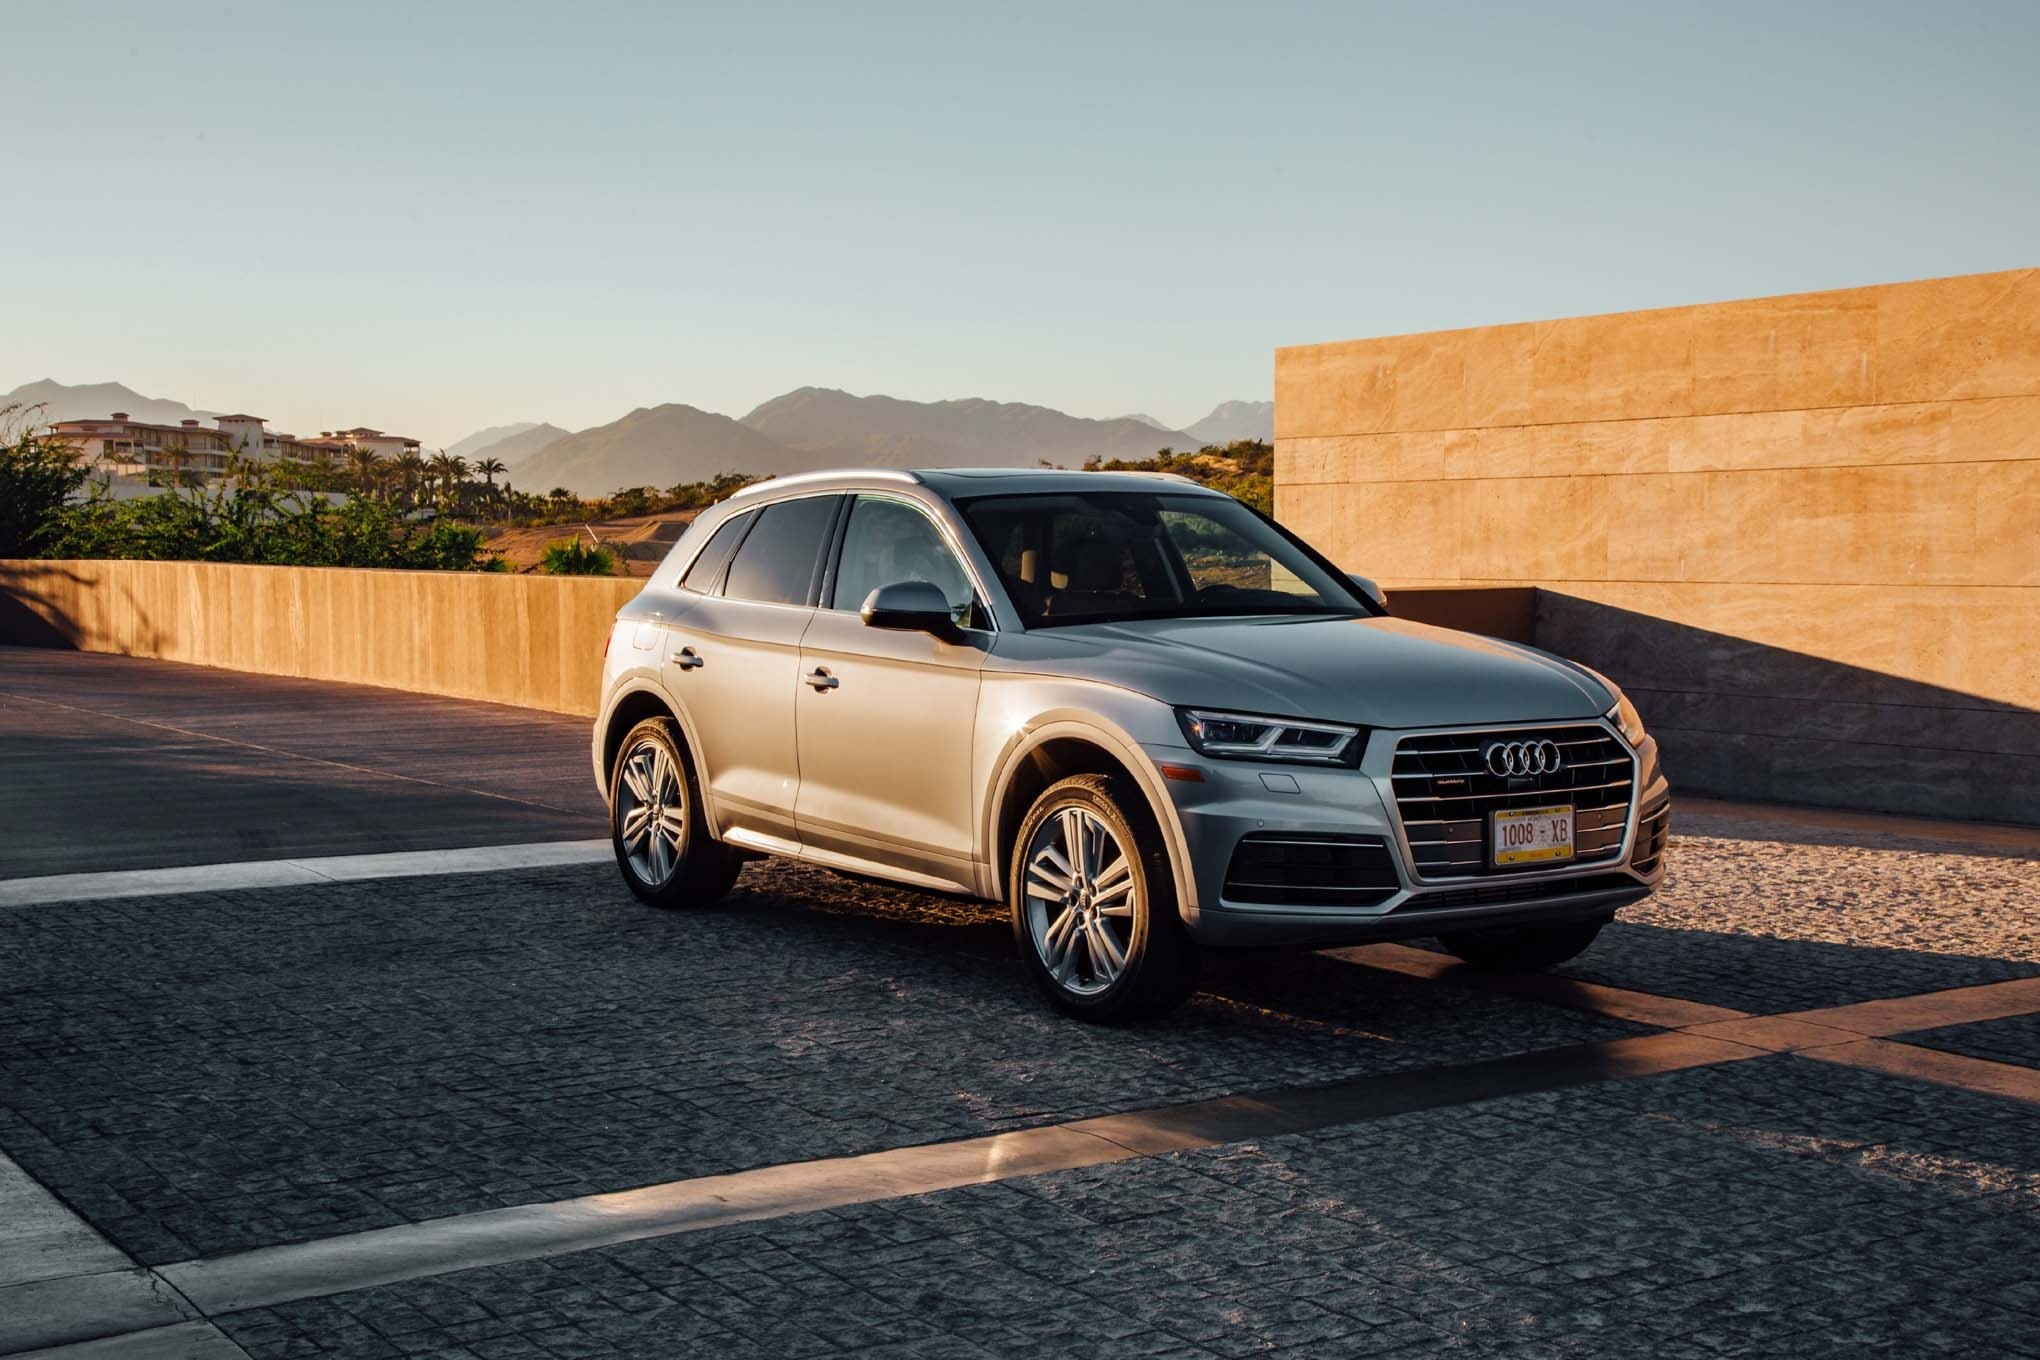 Get The New 2018 Audi Q5 from this Tampa Audi Dealer in Florida